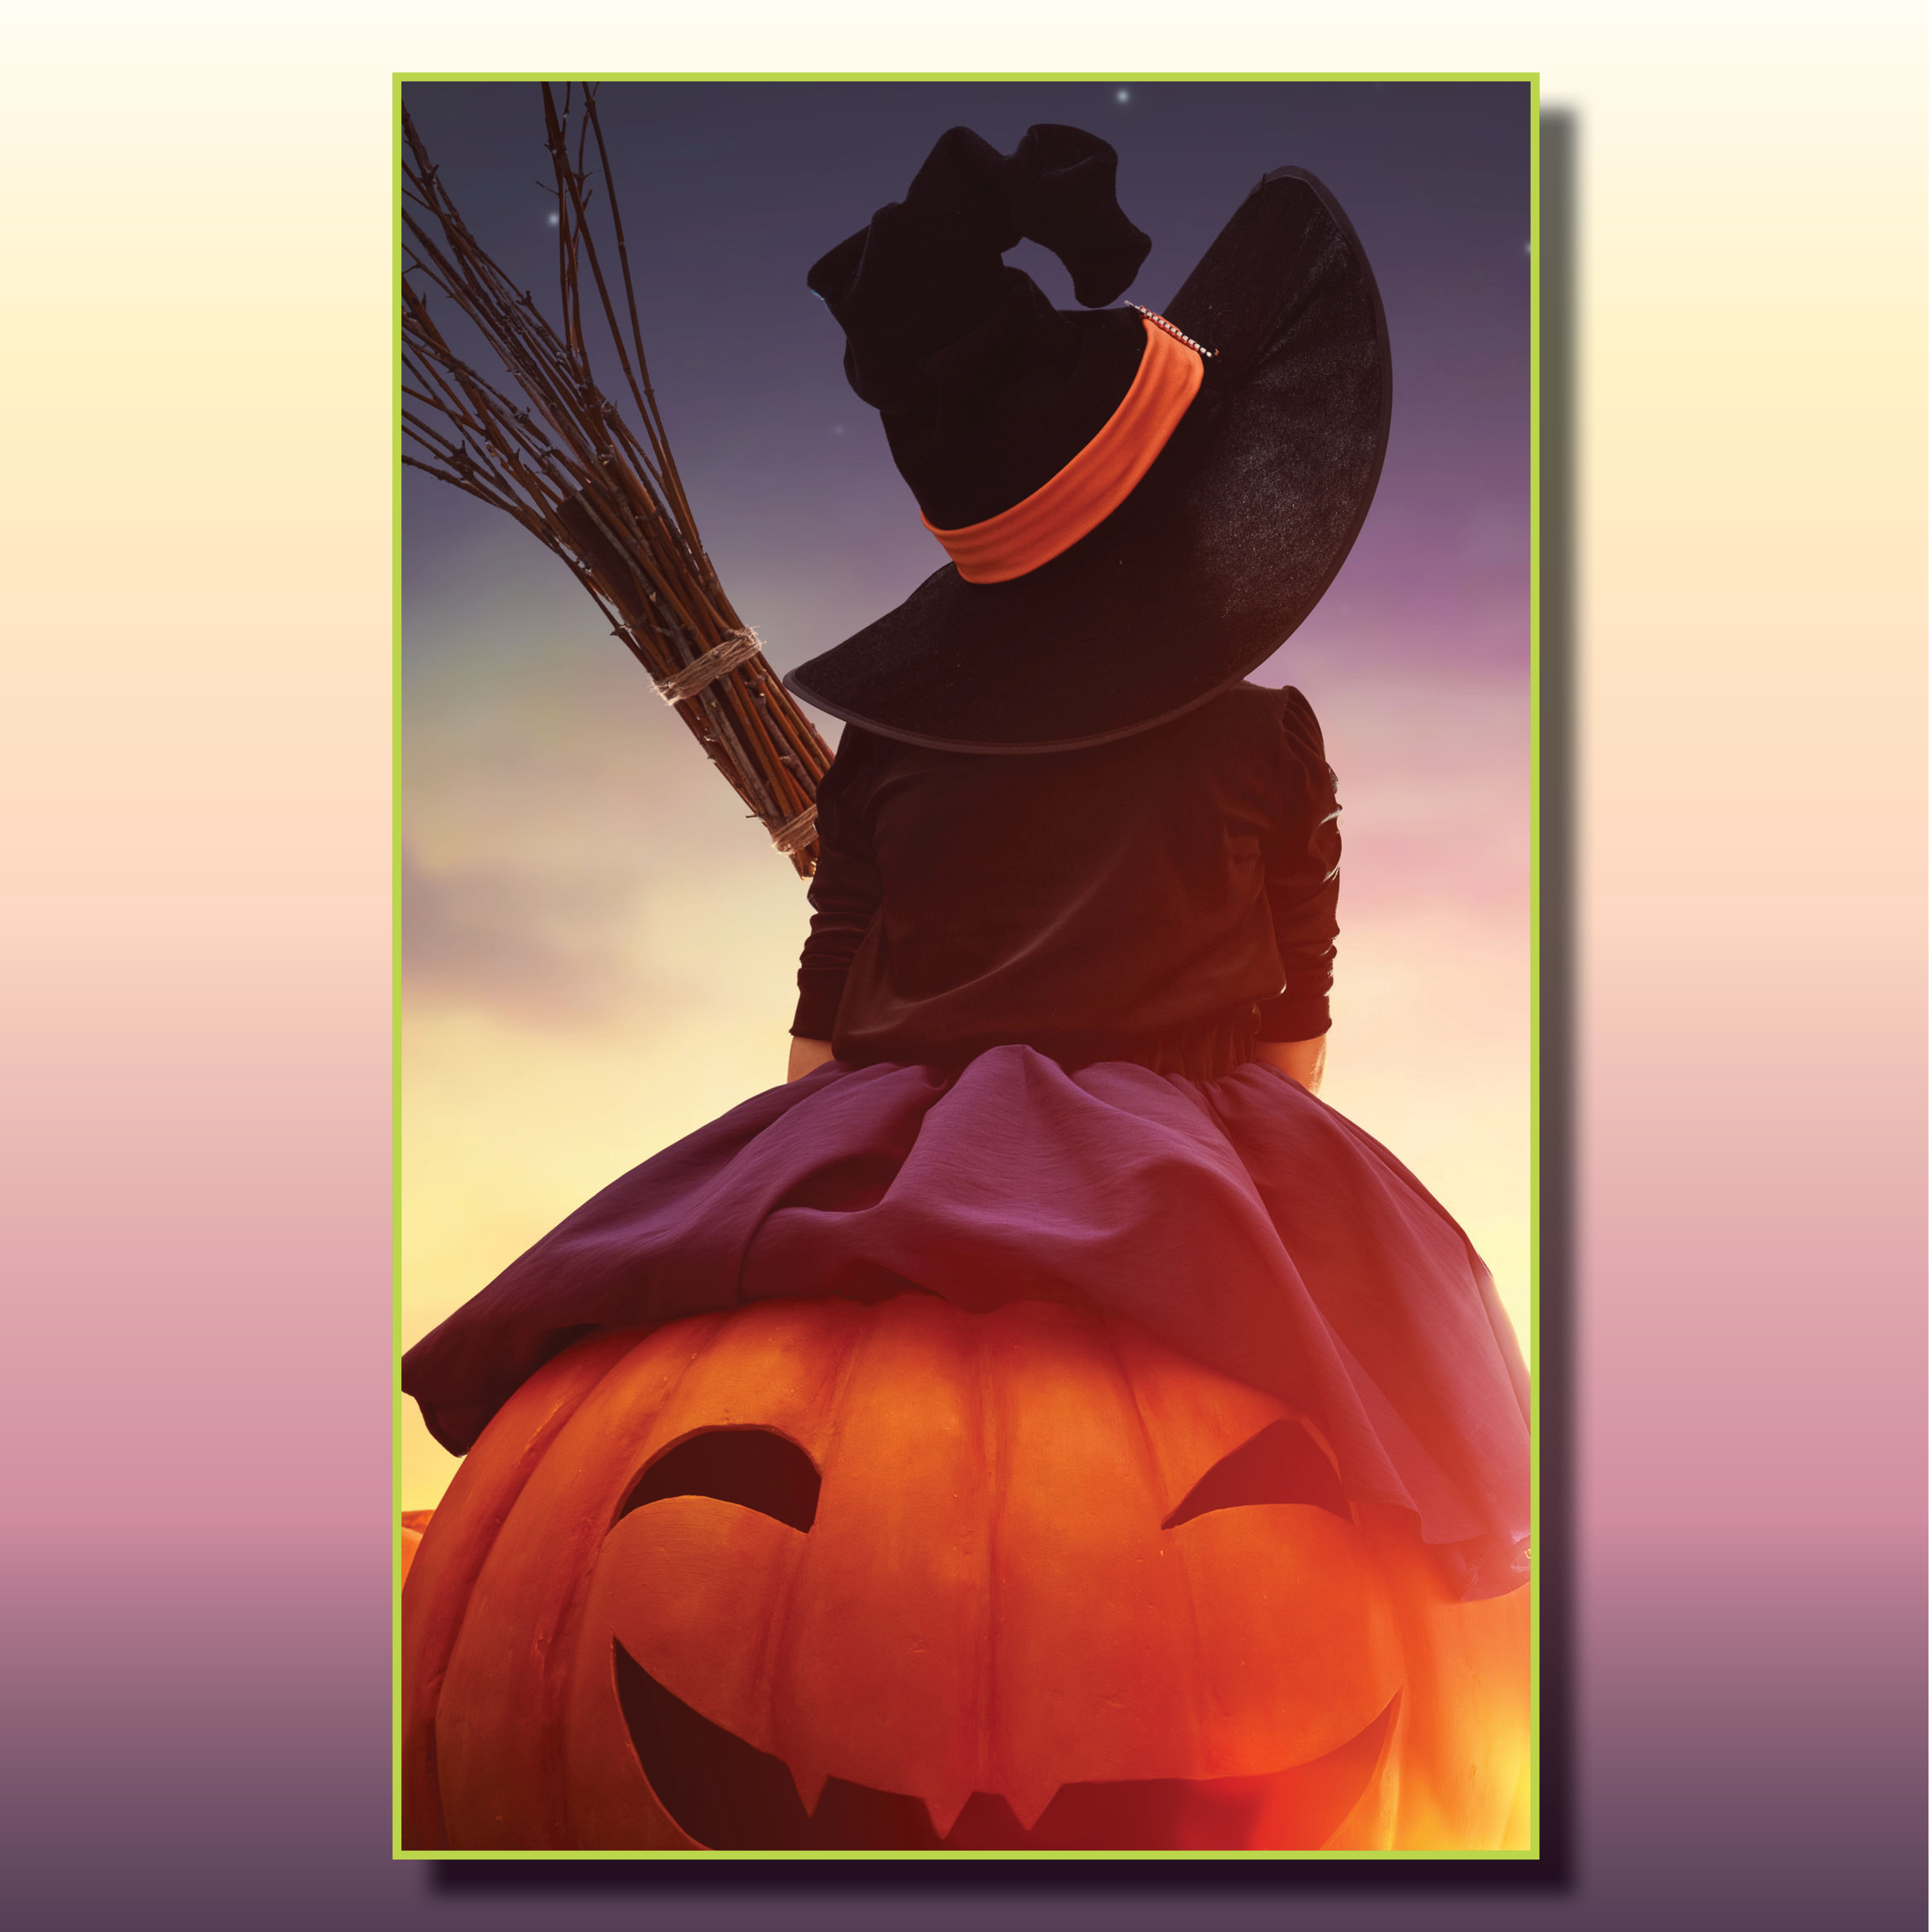 Costumes, stories, cool grossness and more in Oct